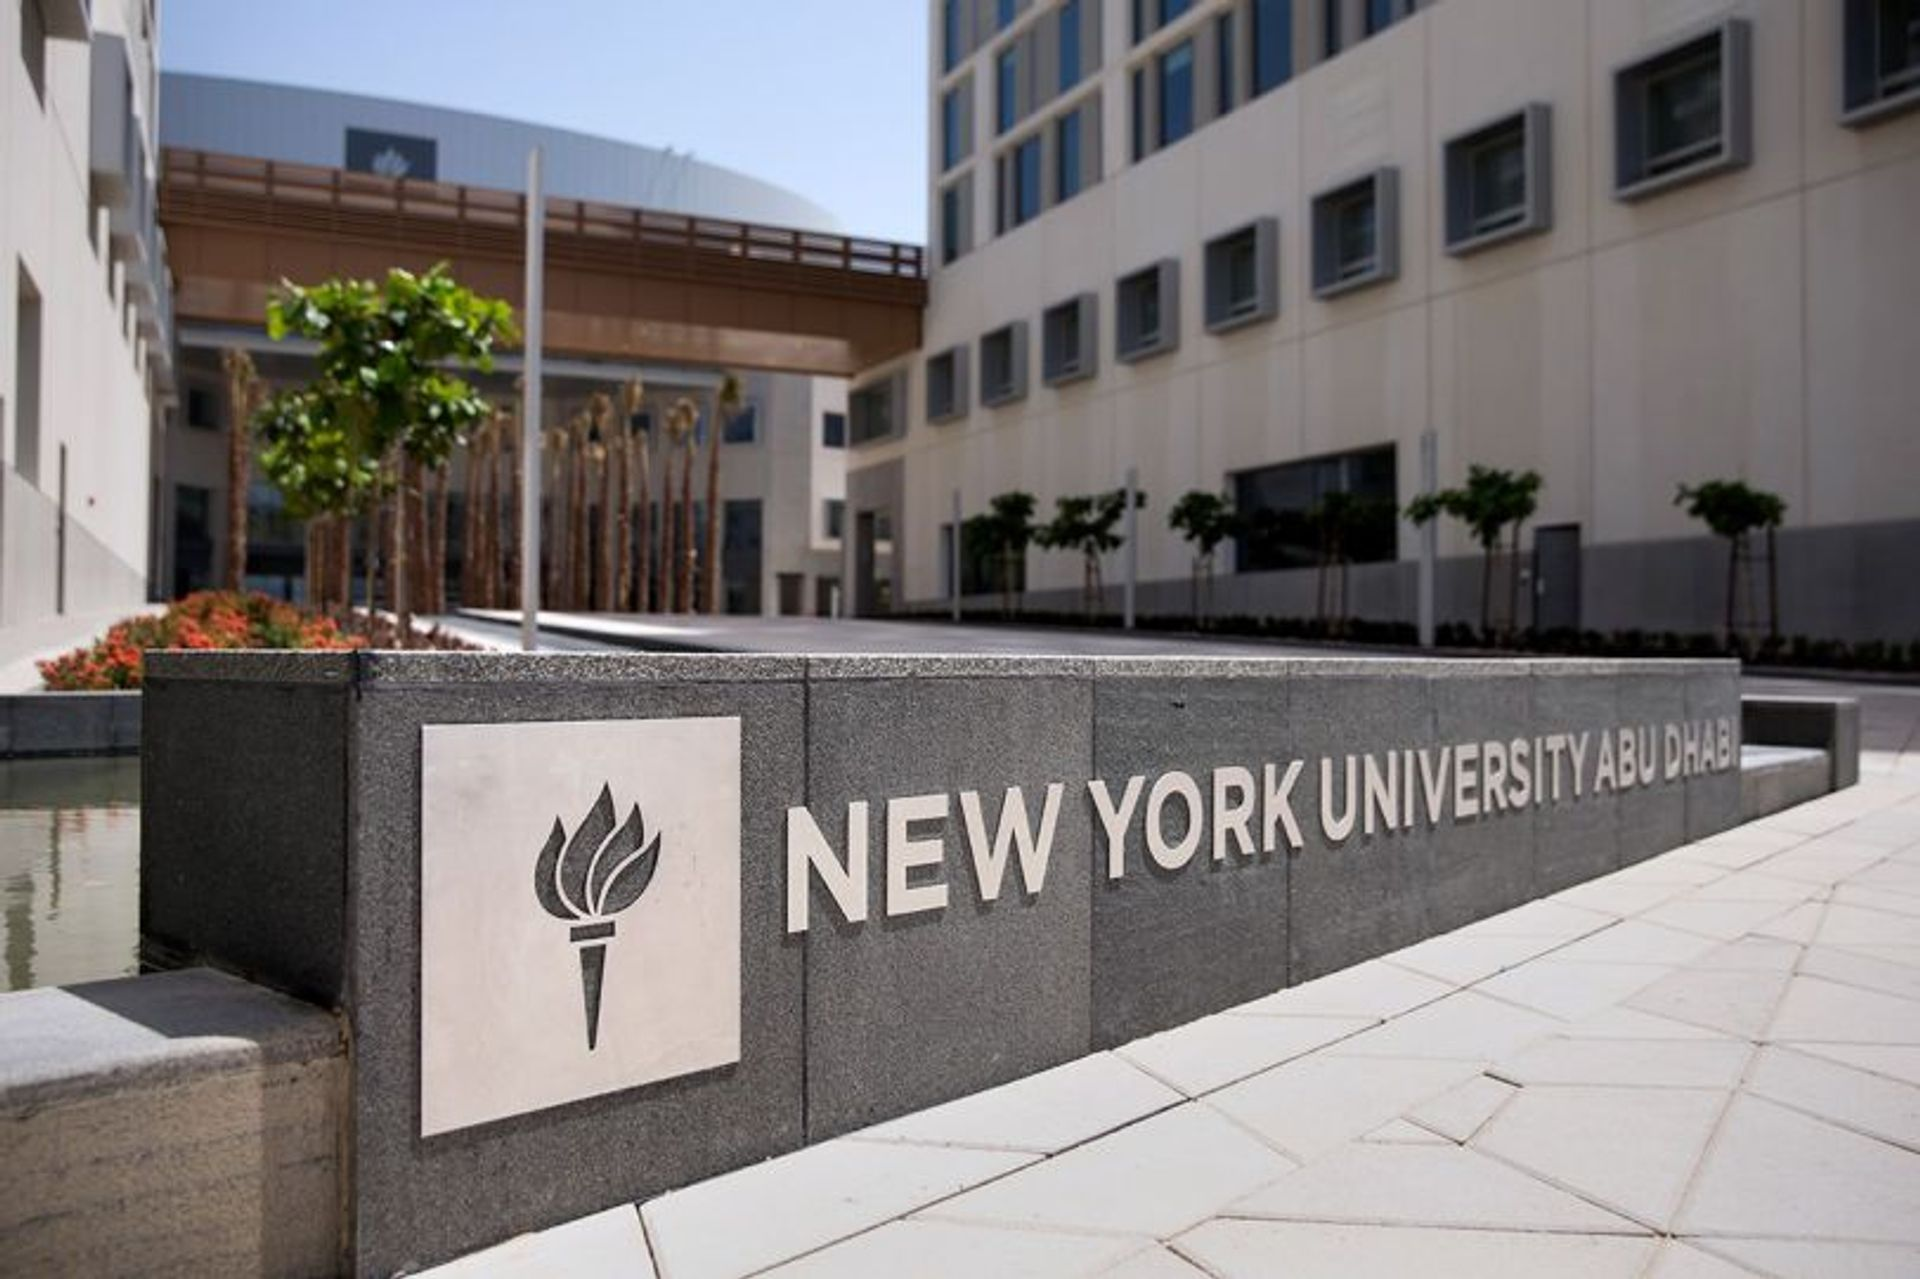 The UAE's first Master of Fine Arts programme will be offered next autumn by New York University Abu Dhabi Courtesy of New York University Abu Dhabi